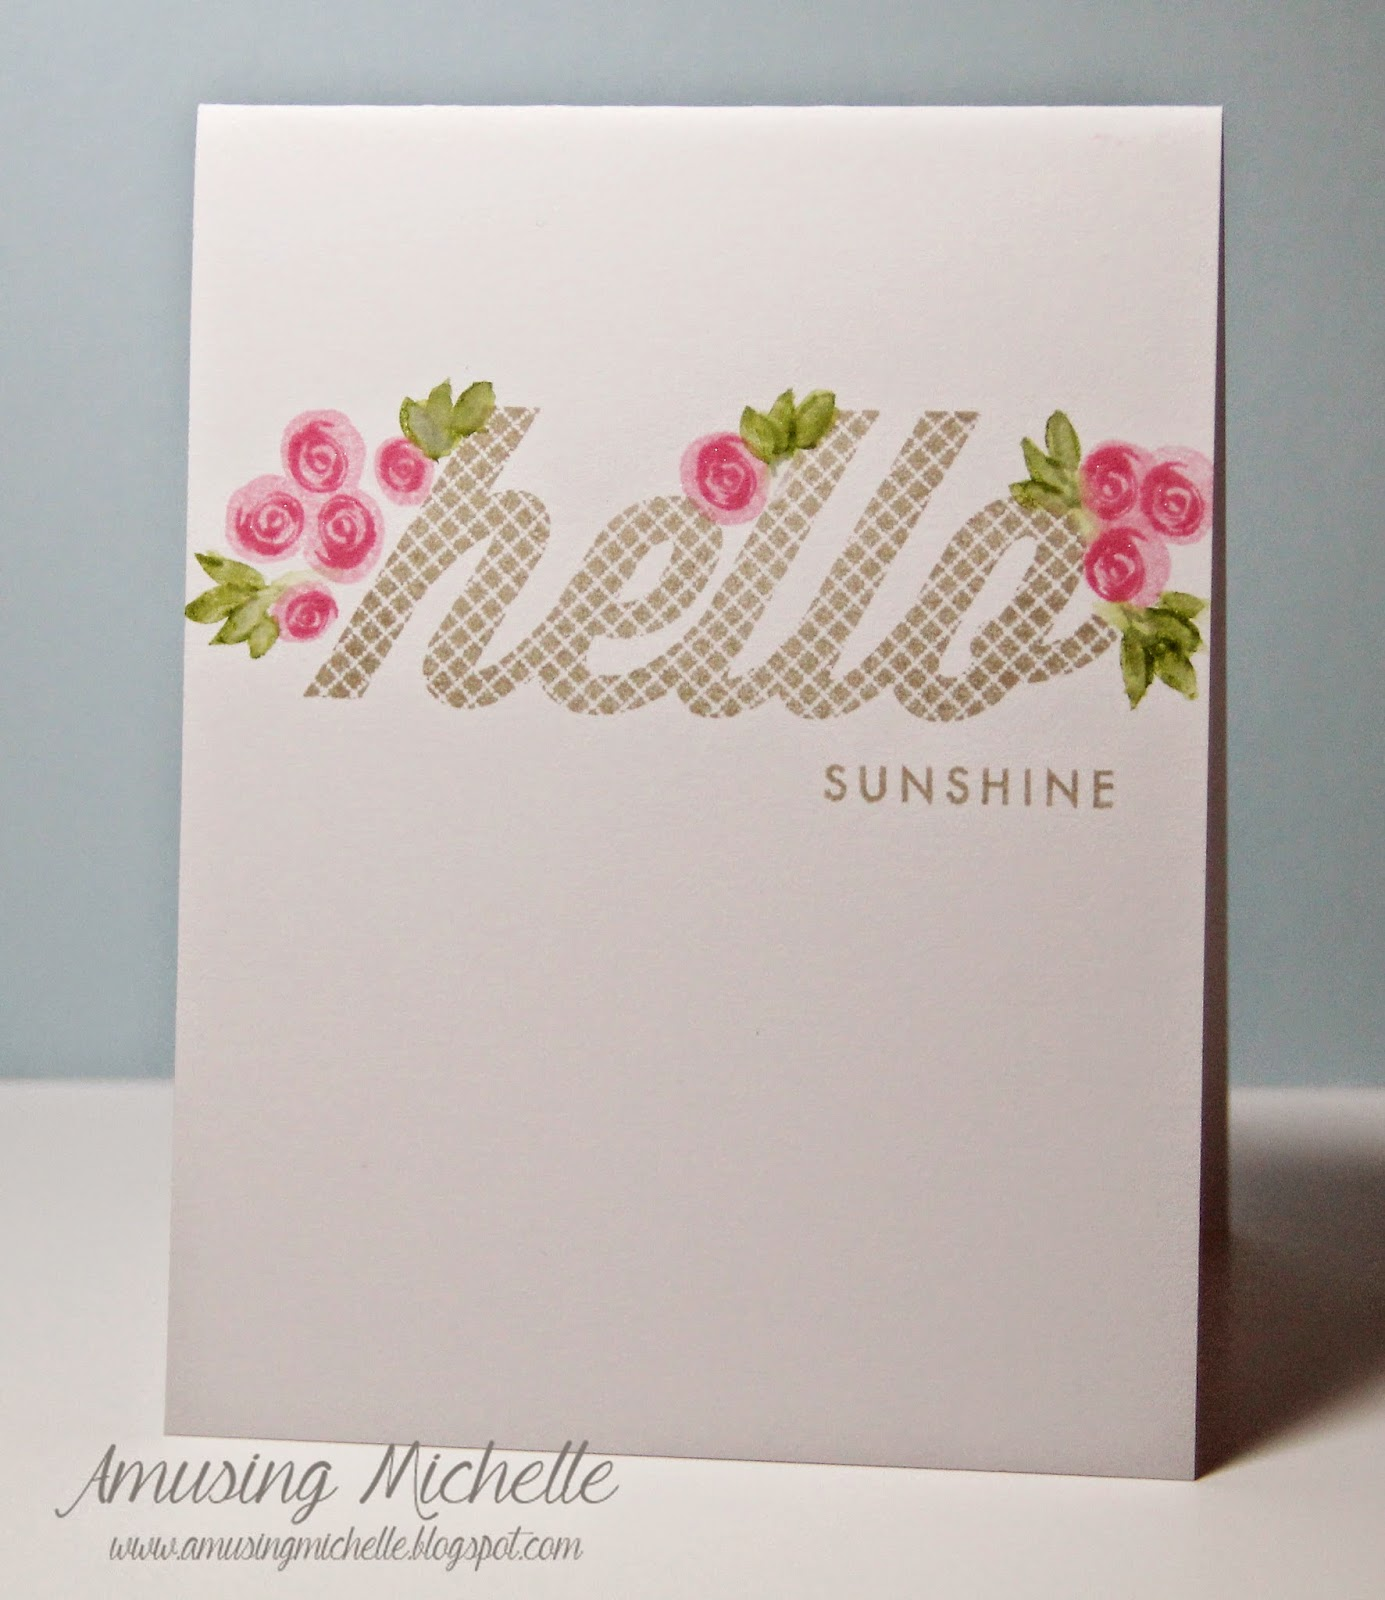 My Original Cards Were Very Graphic, And They Just Werenu0027t Working, So This  Time I Used The Lovely Big Hello And A Bunch Of Flowers. Iu0027m Much Happier!